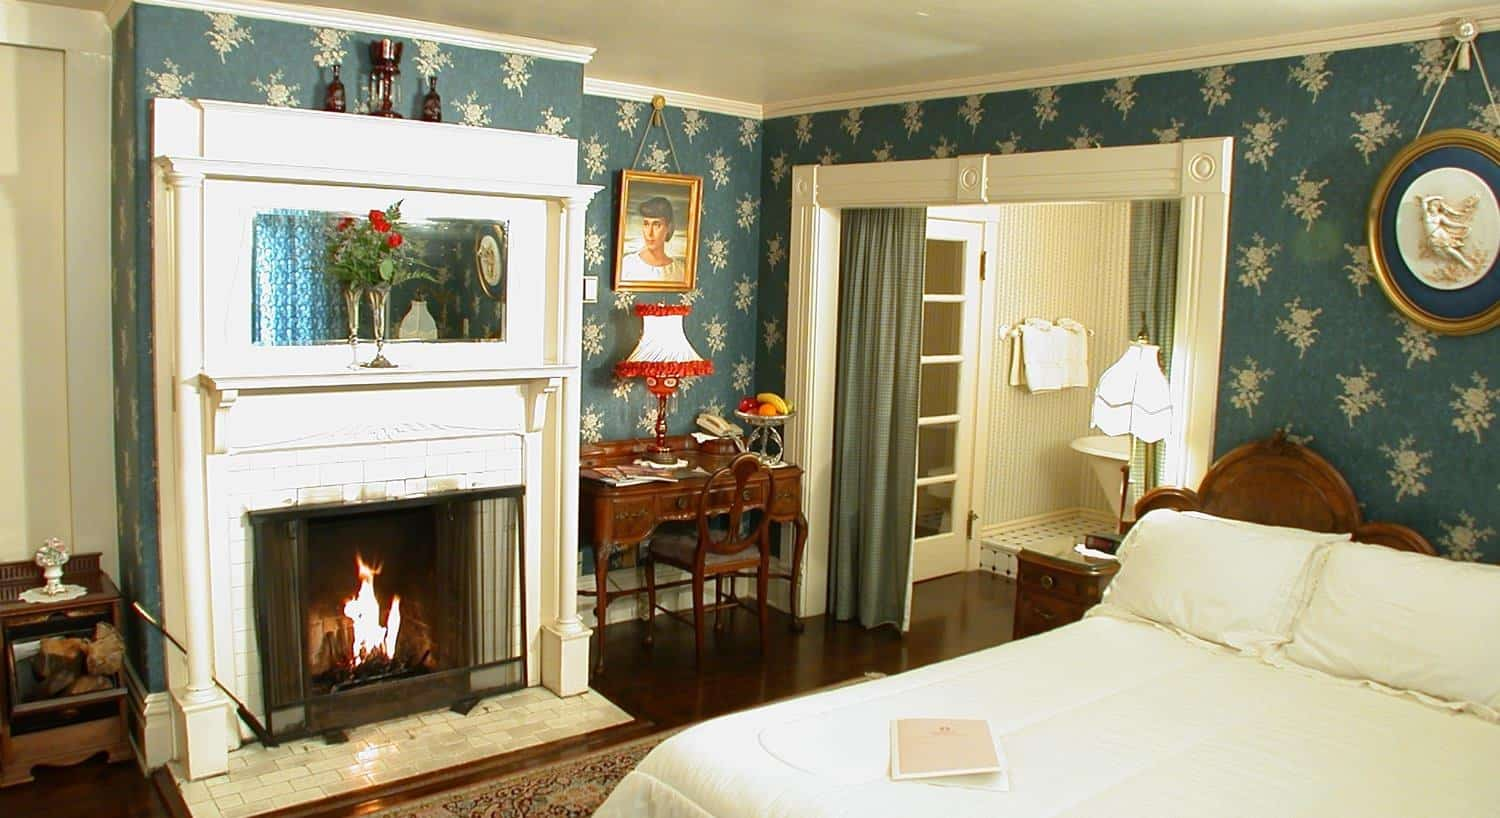 Guest room with blue-green walls, fireplace with white painted wood surround and bed with white bedding